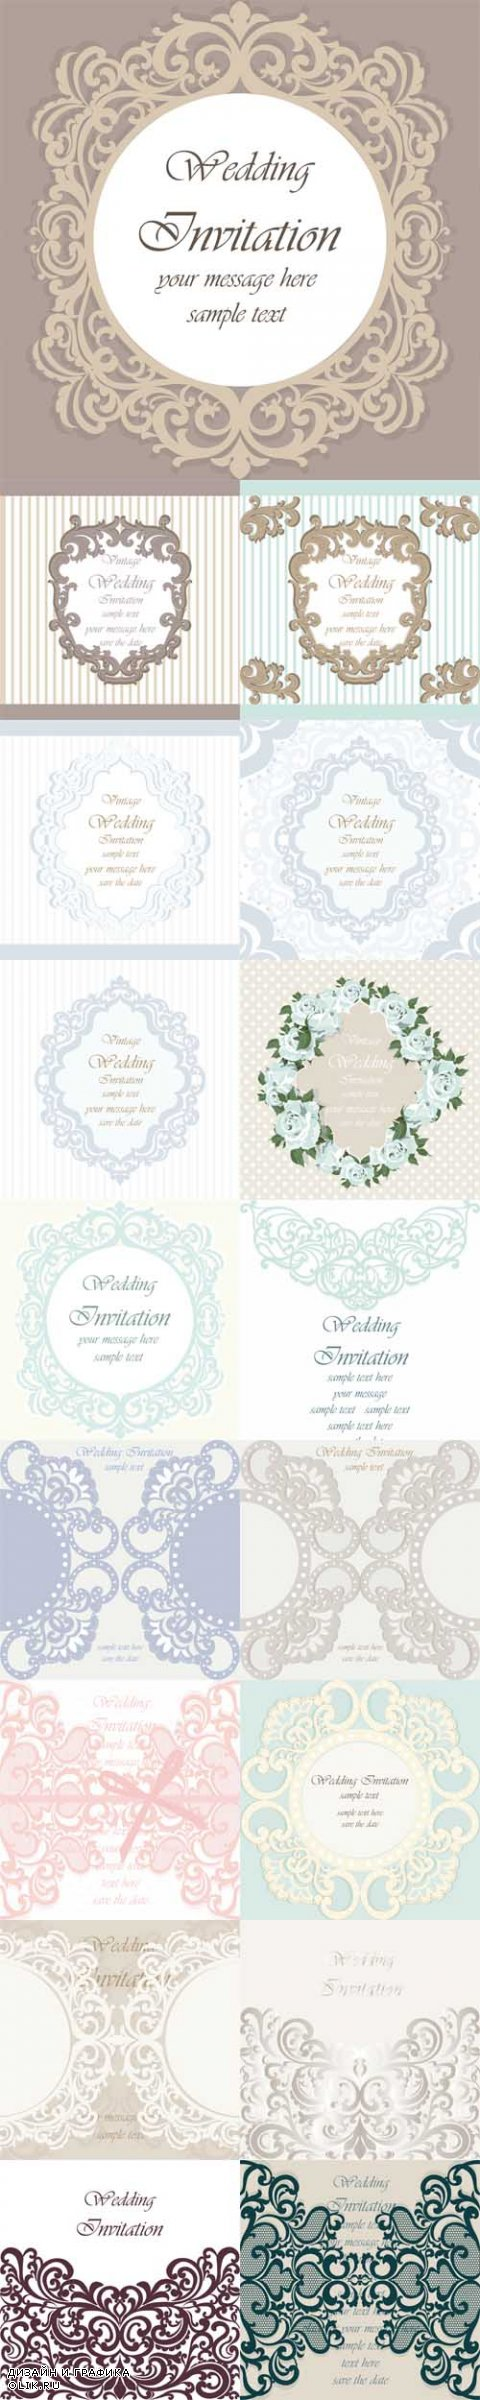 Vector Wedding Invitation Card with Lace Ornament